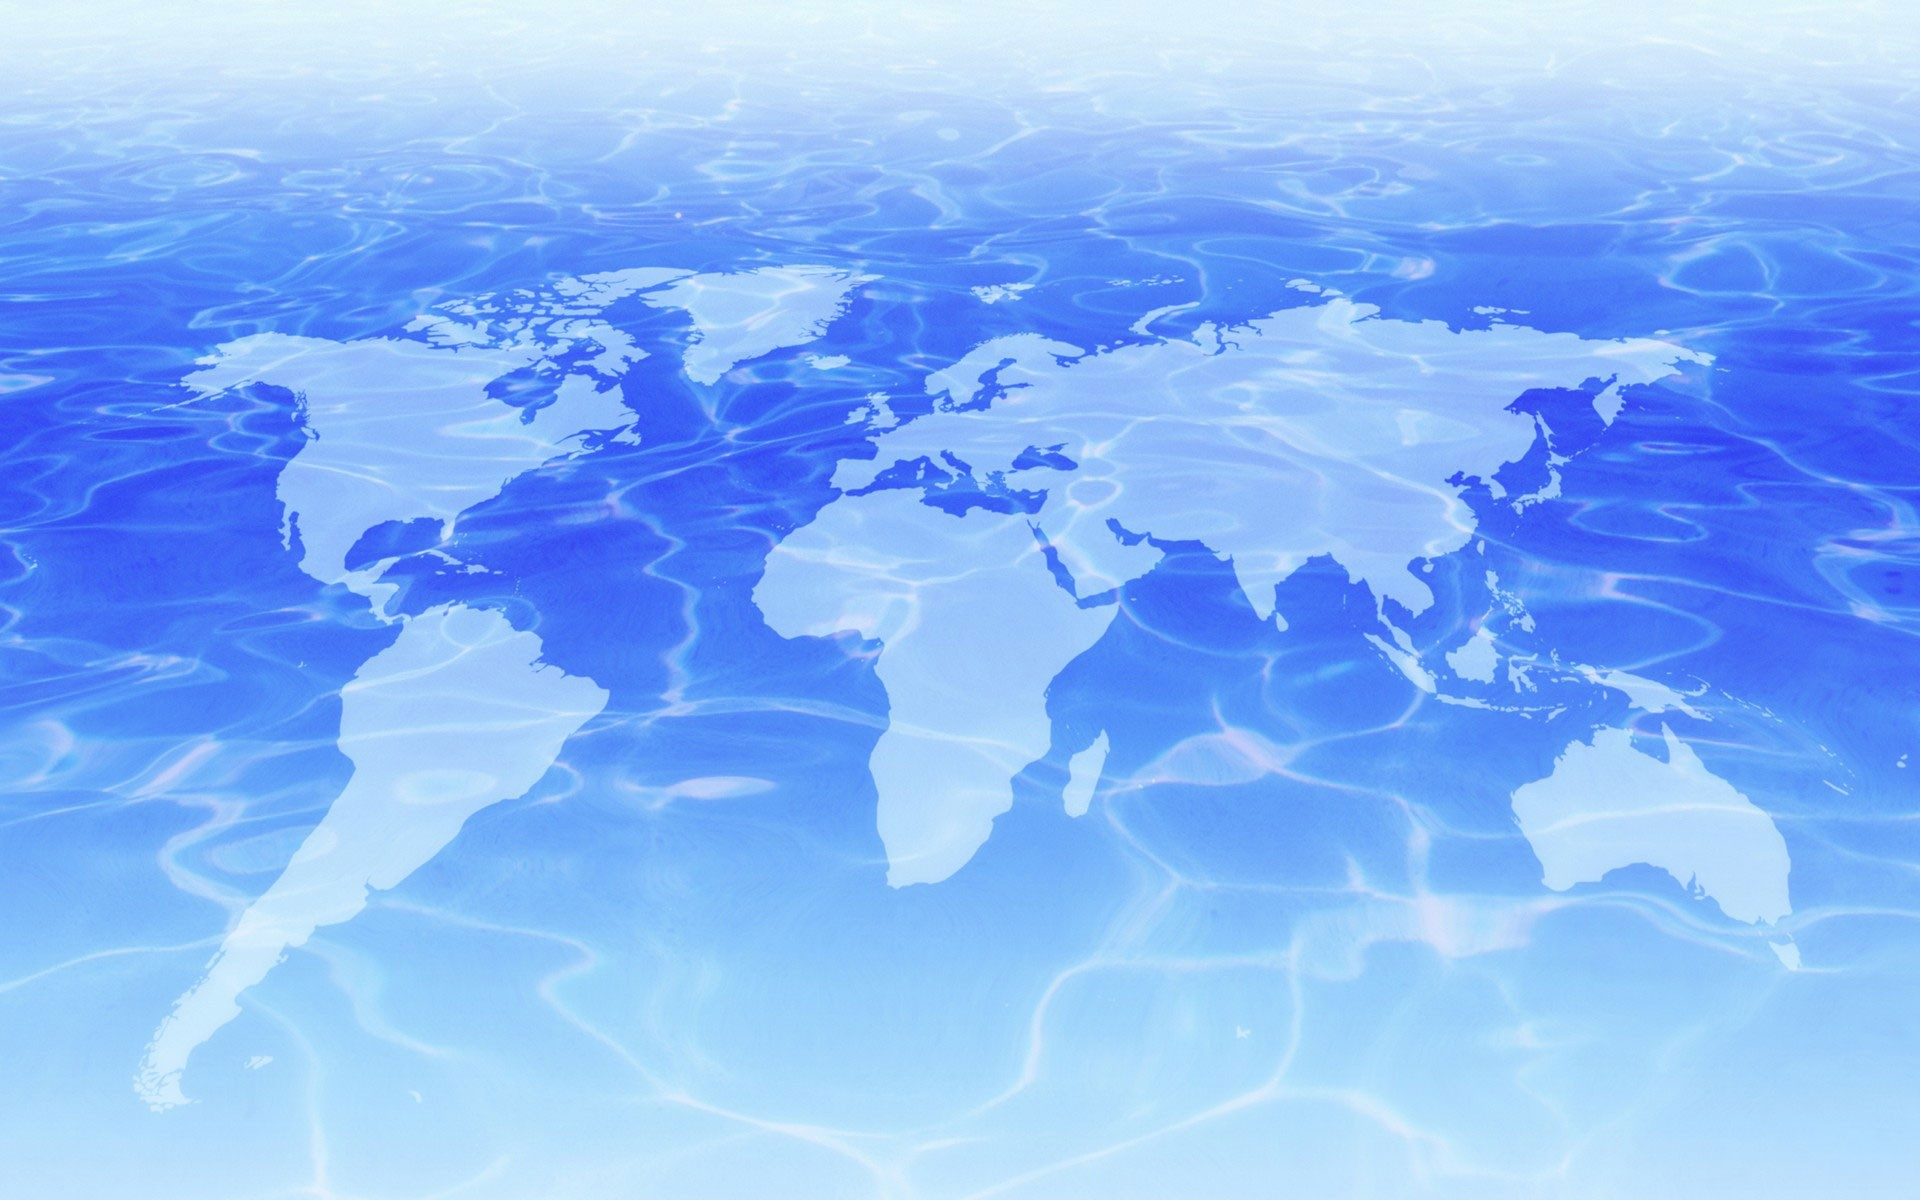 World map background download free stunning high resolution digital gumiabroncs Image collections